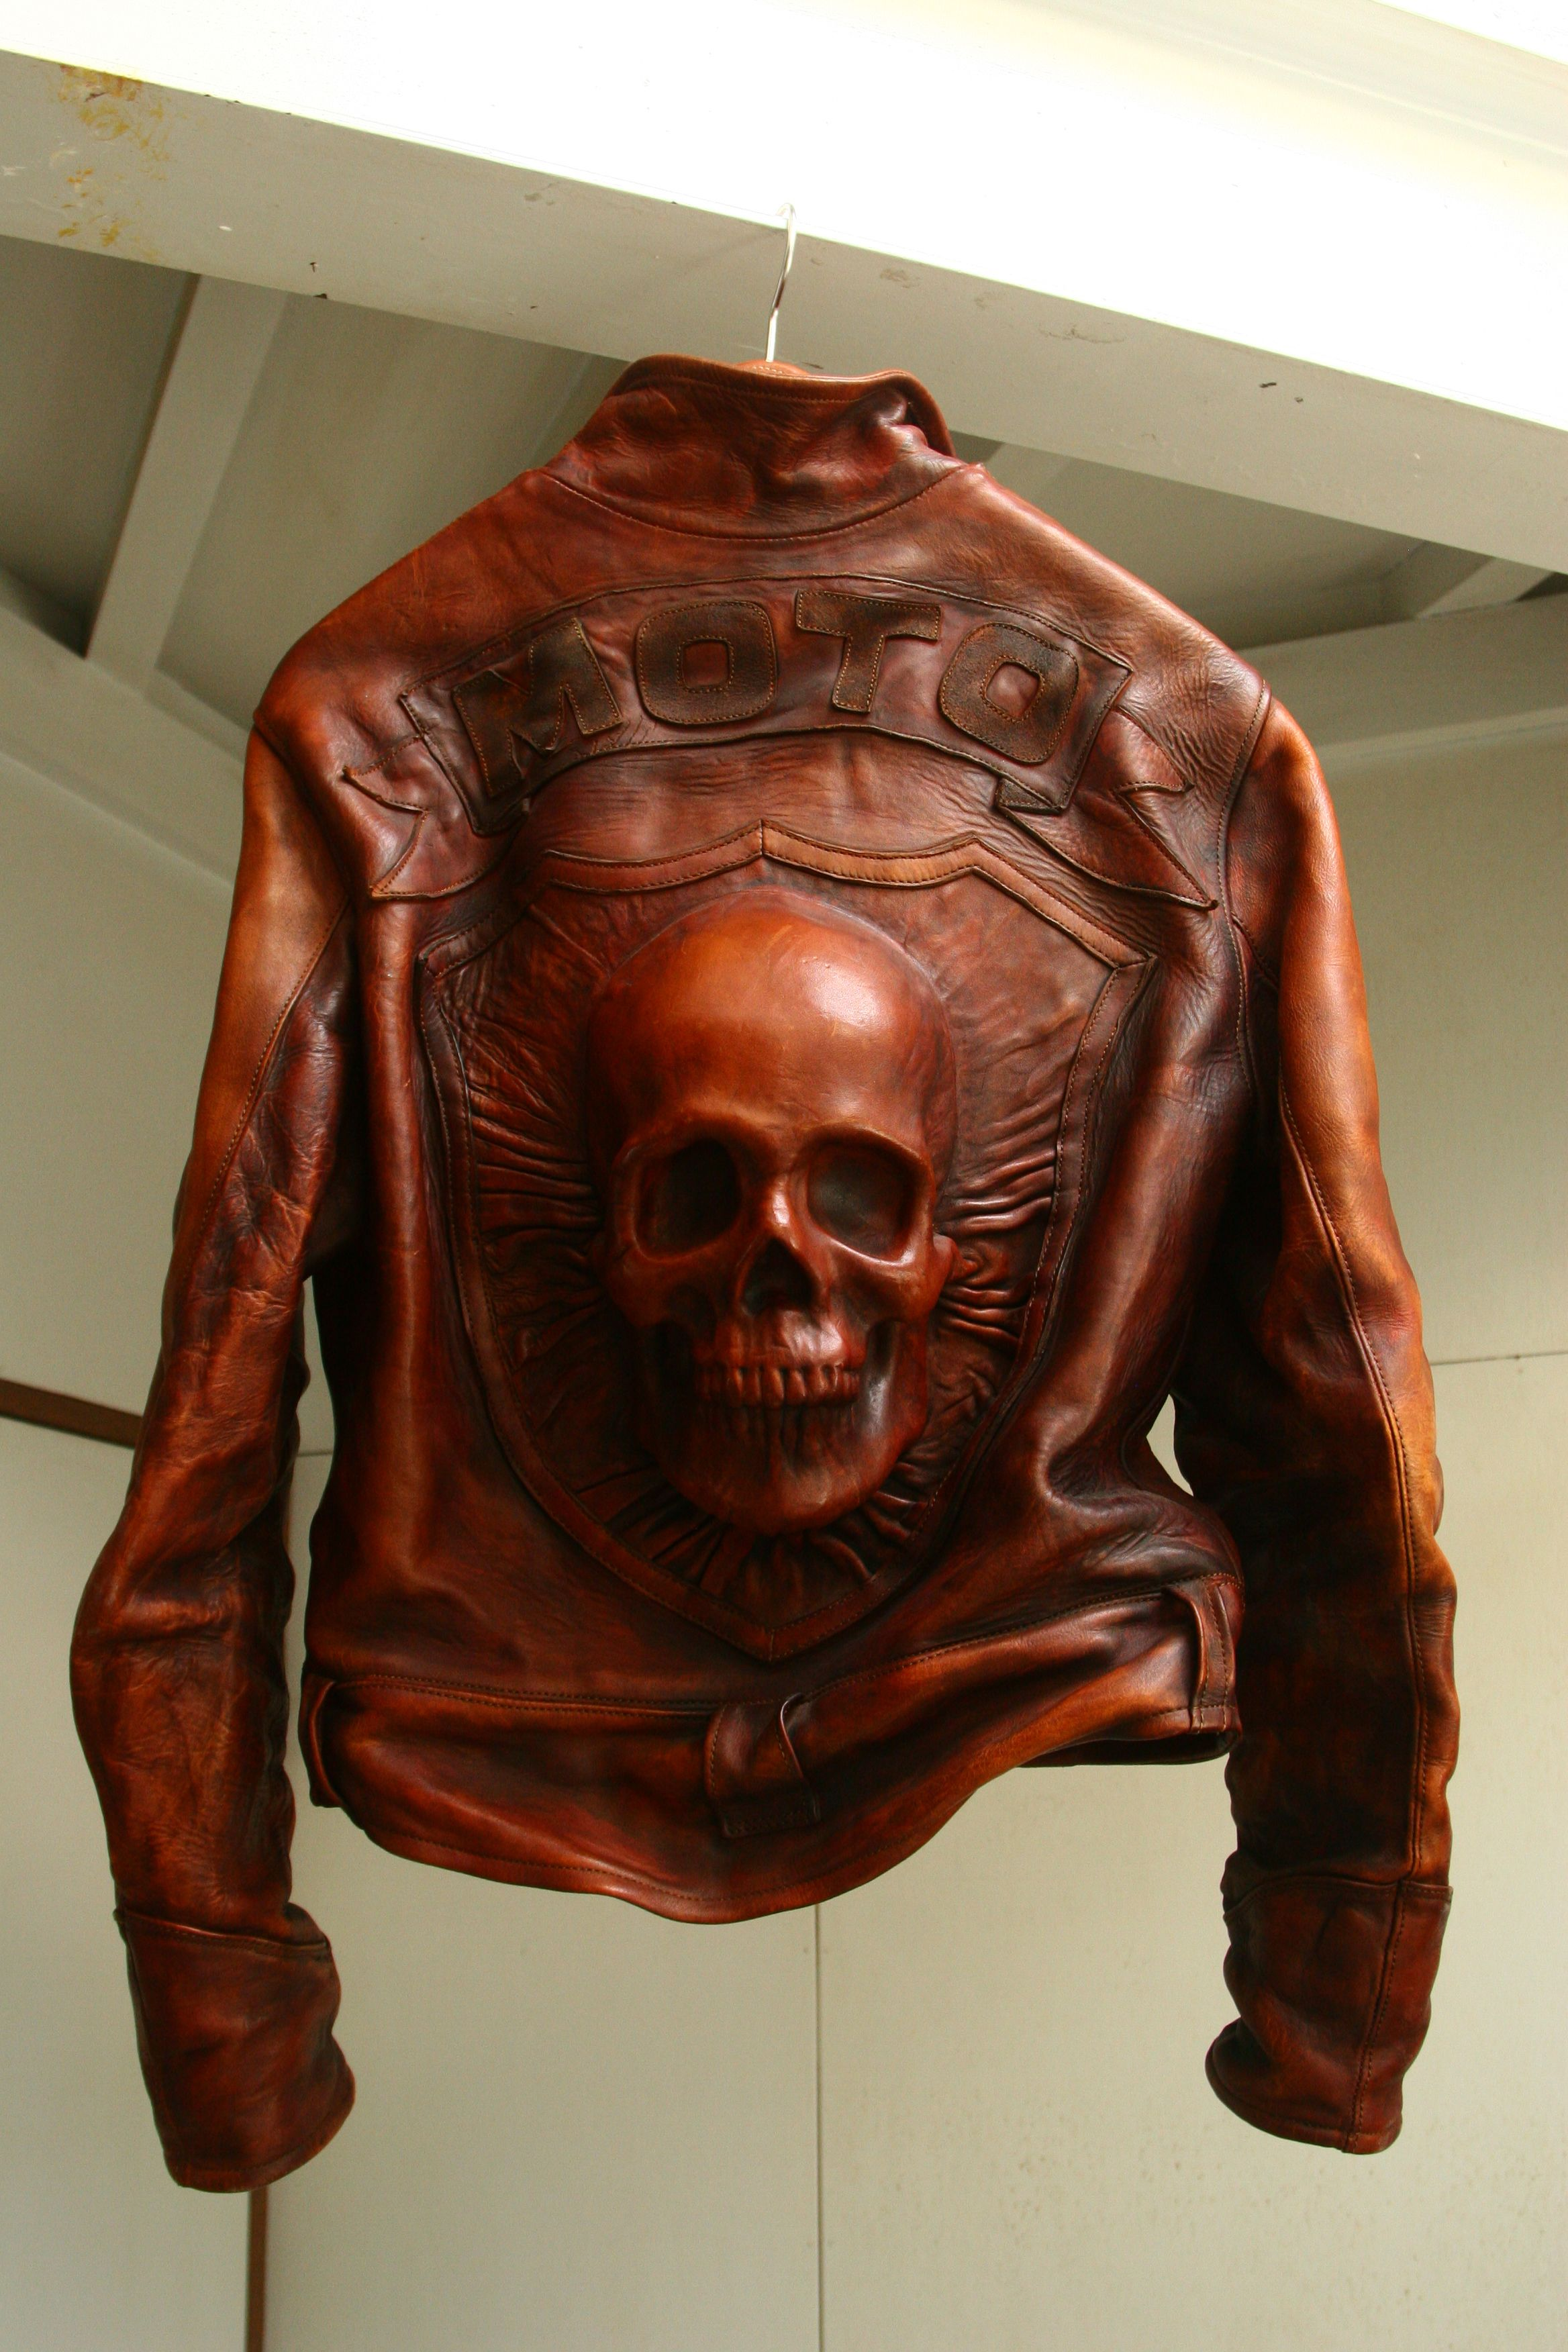 As An Example Of Great Leather Working This Is Fantastic